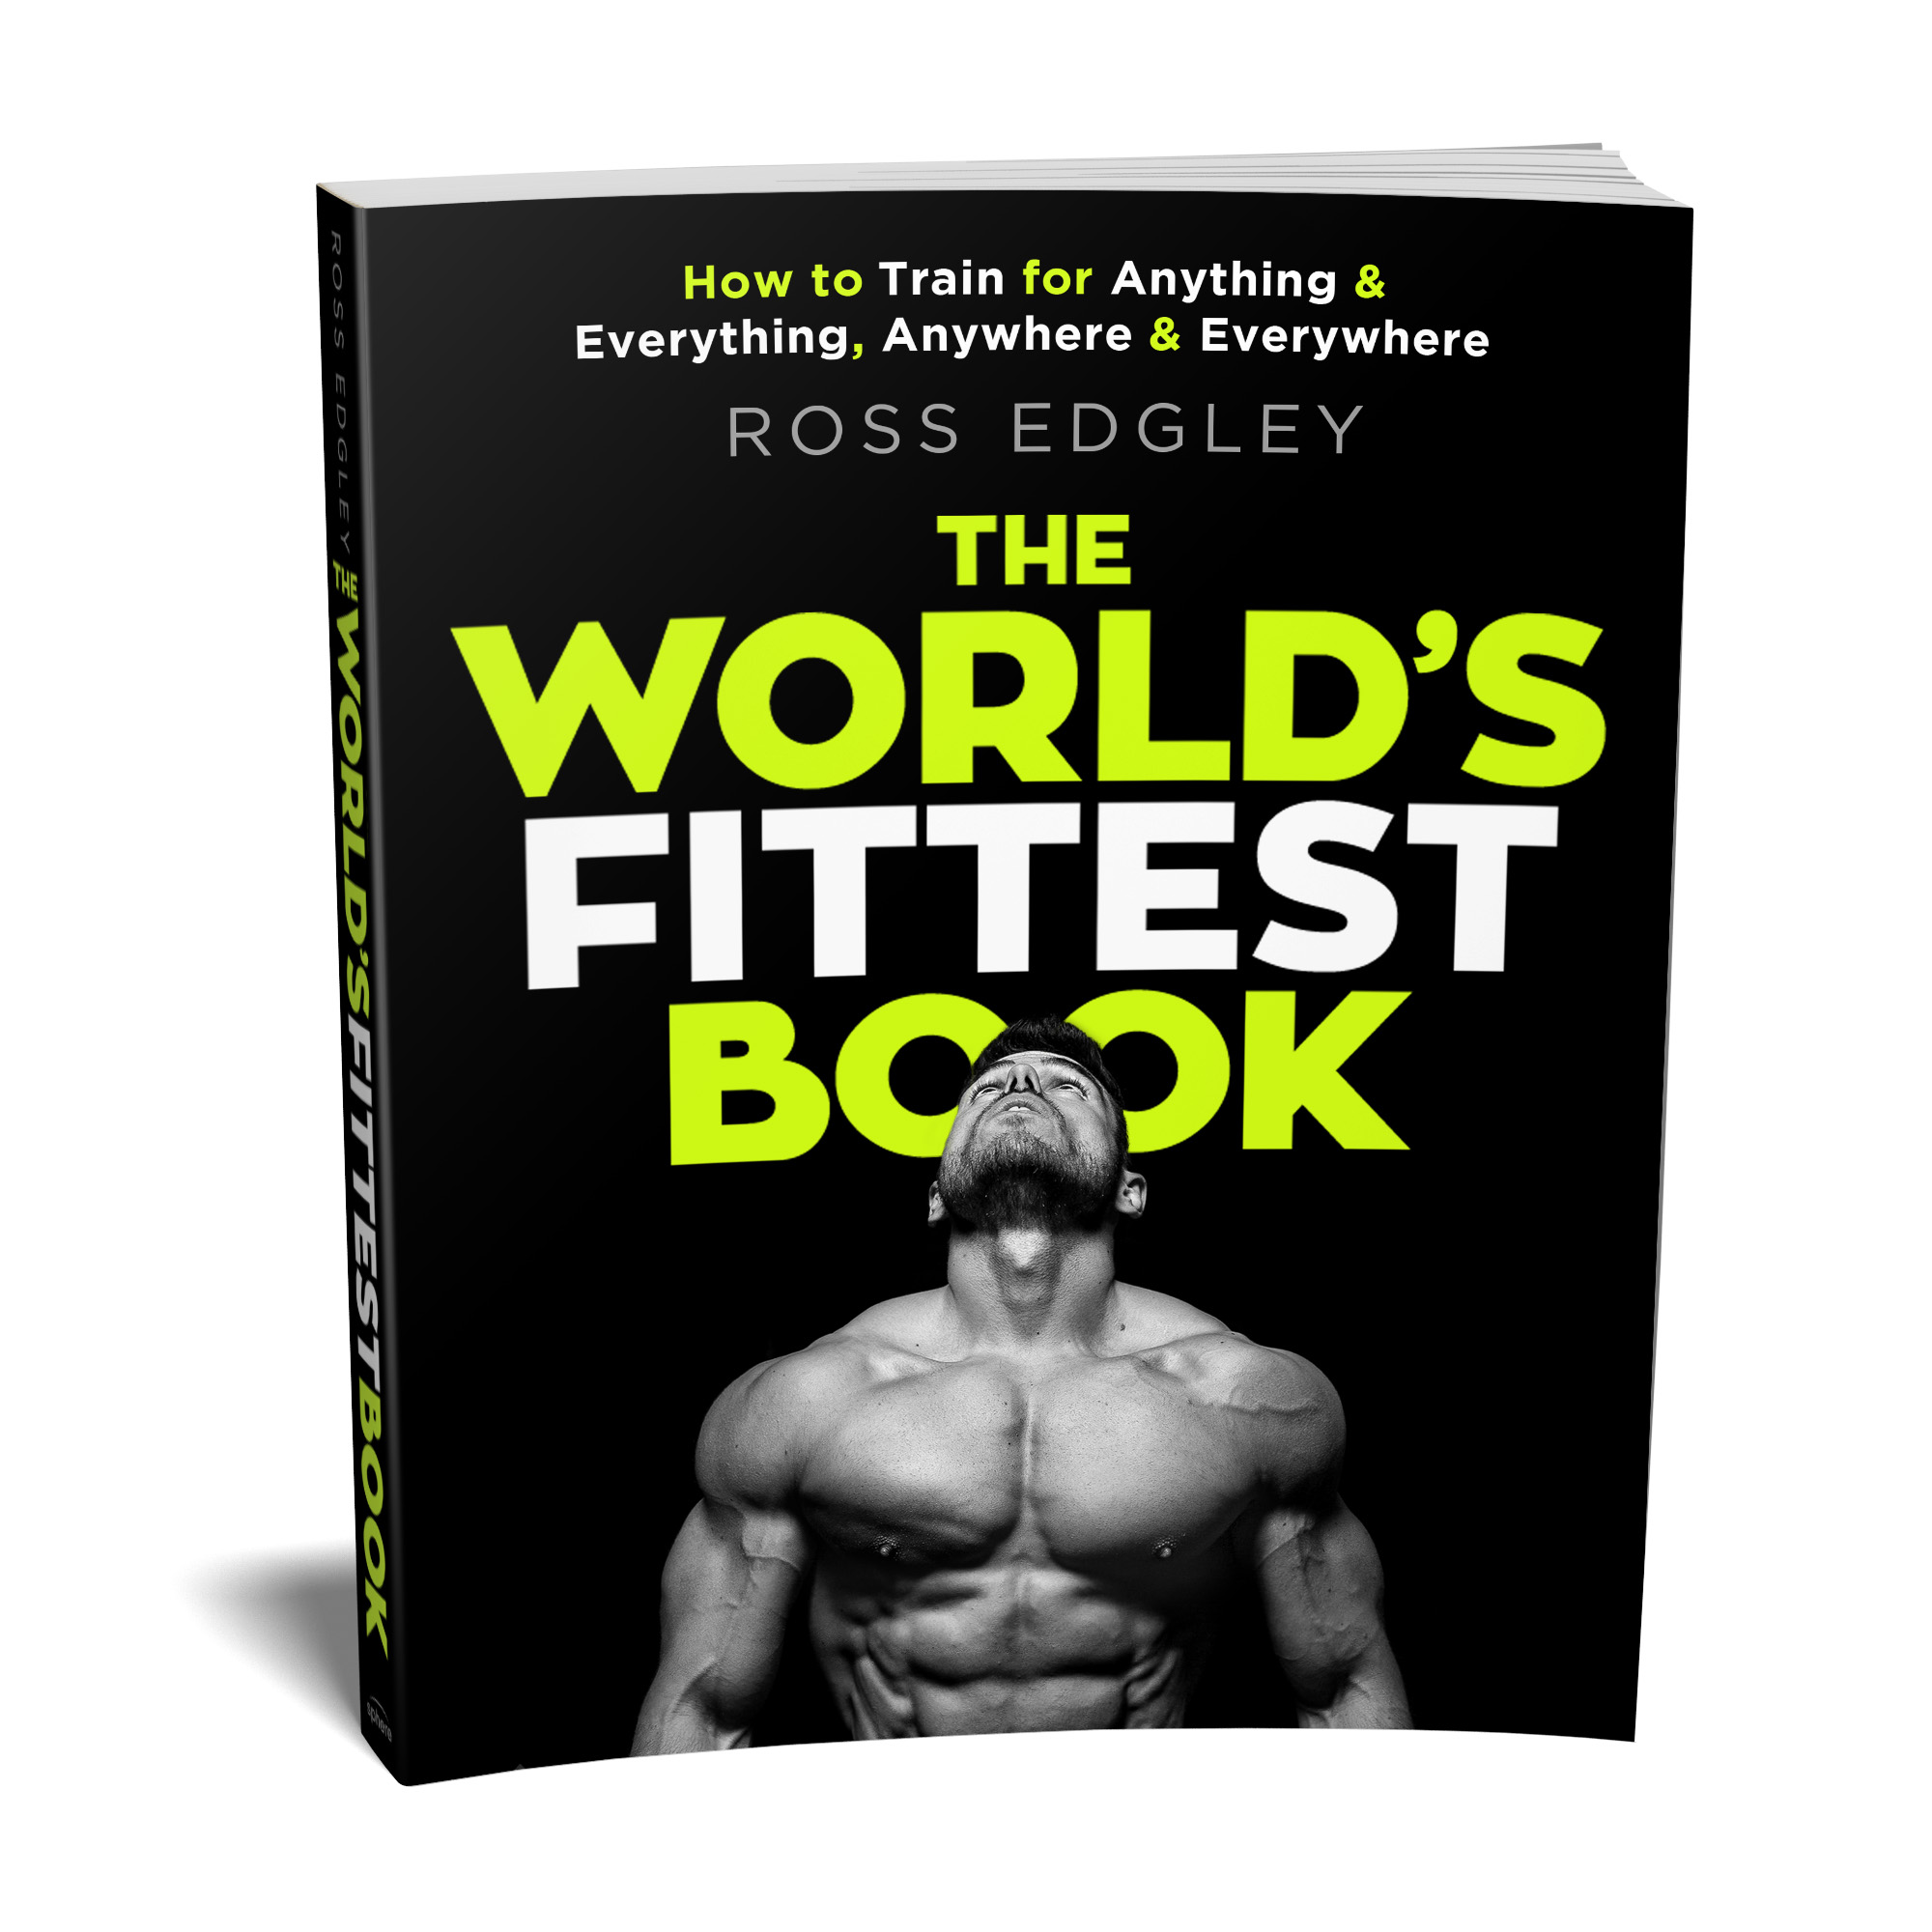 The World's Fittest Book